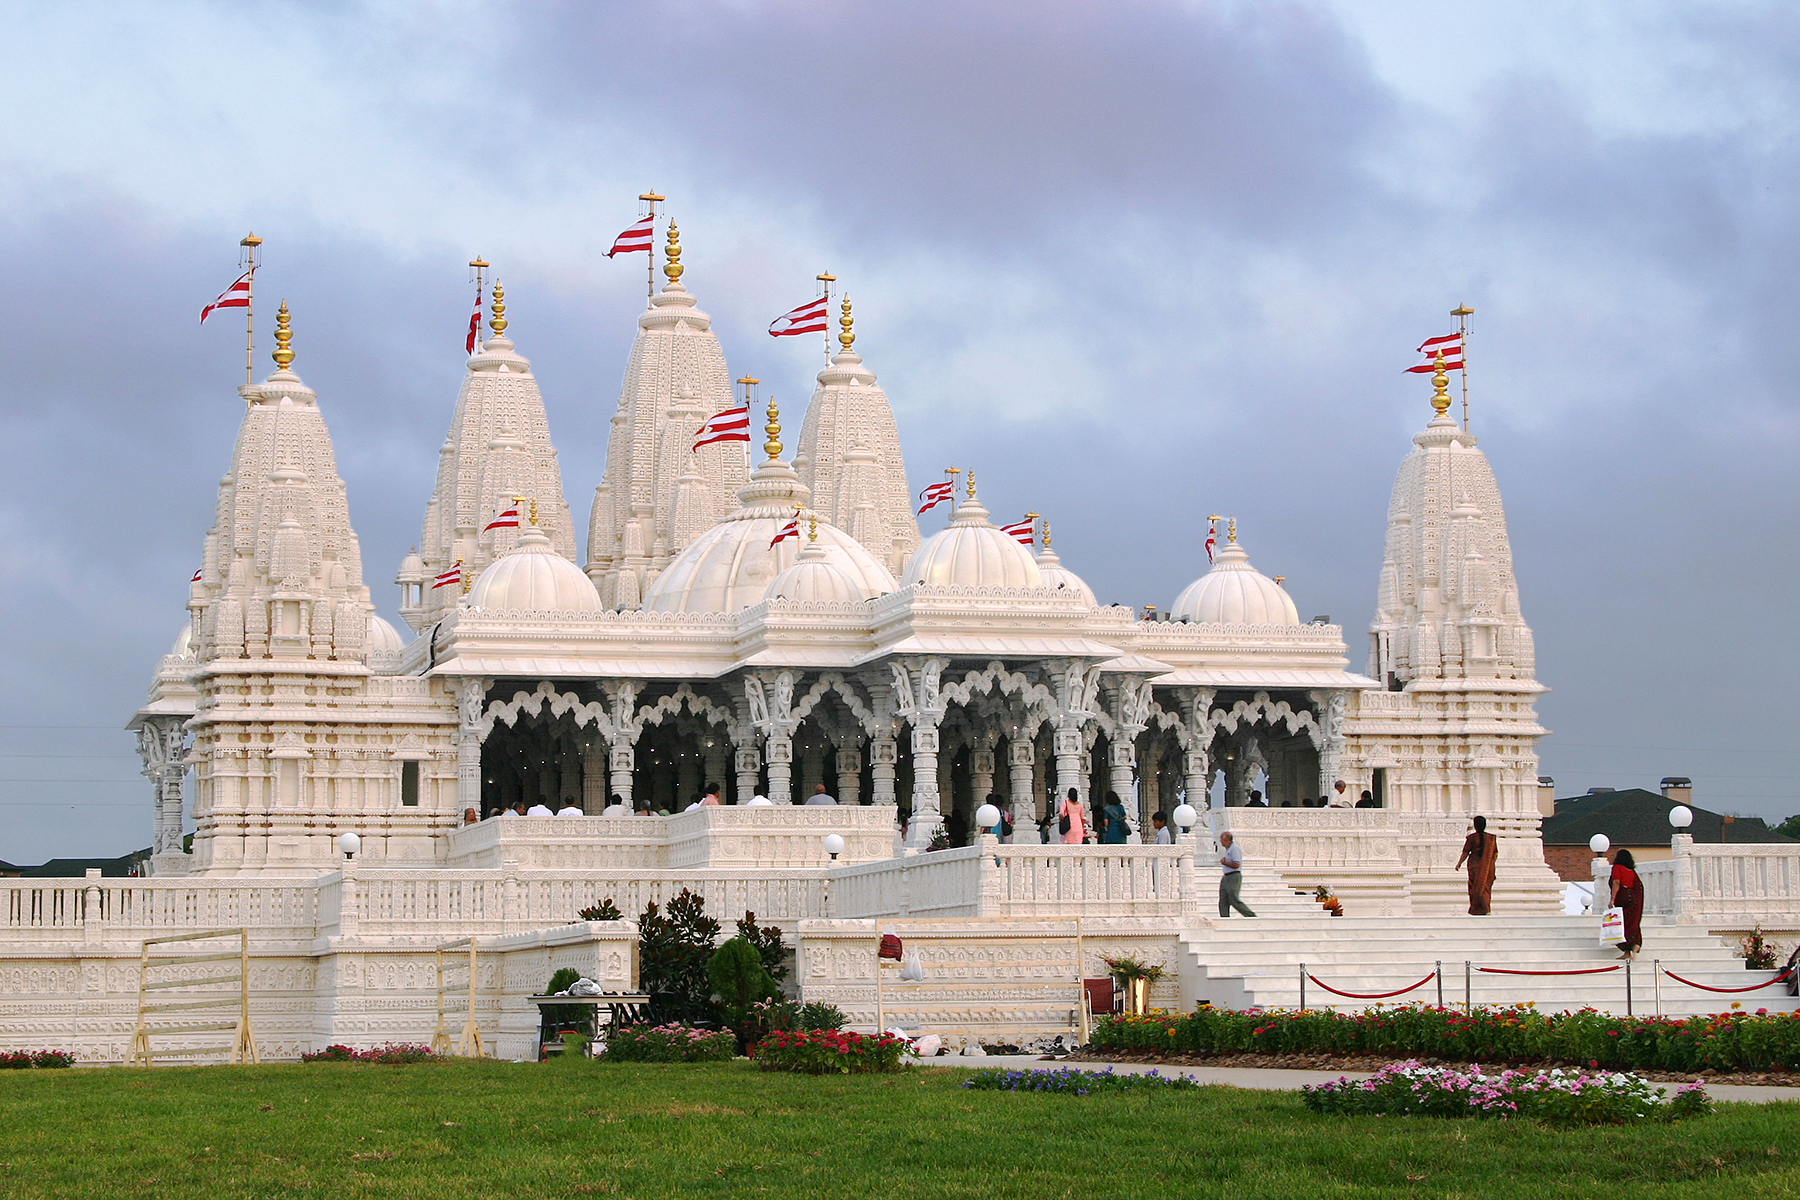 Hindu Temple Visit Reflection Essay